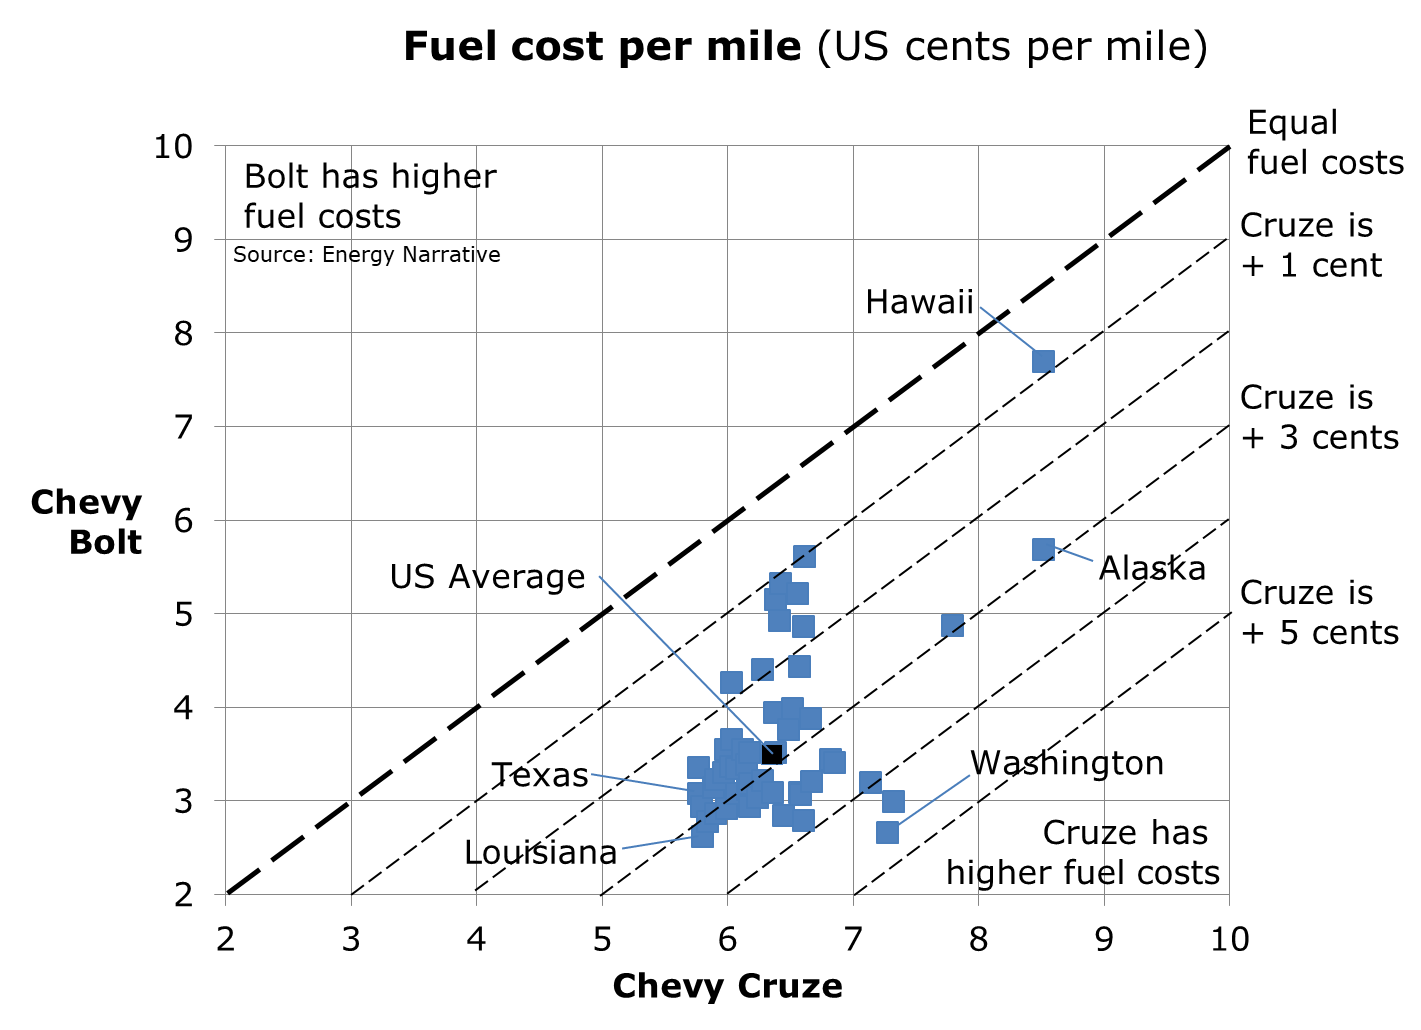 Chevy Cruze Average Fuel Cost Per Mile By State Us Cents